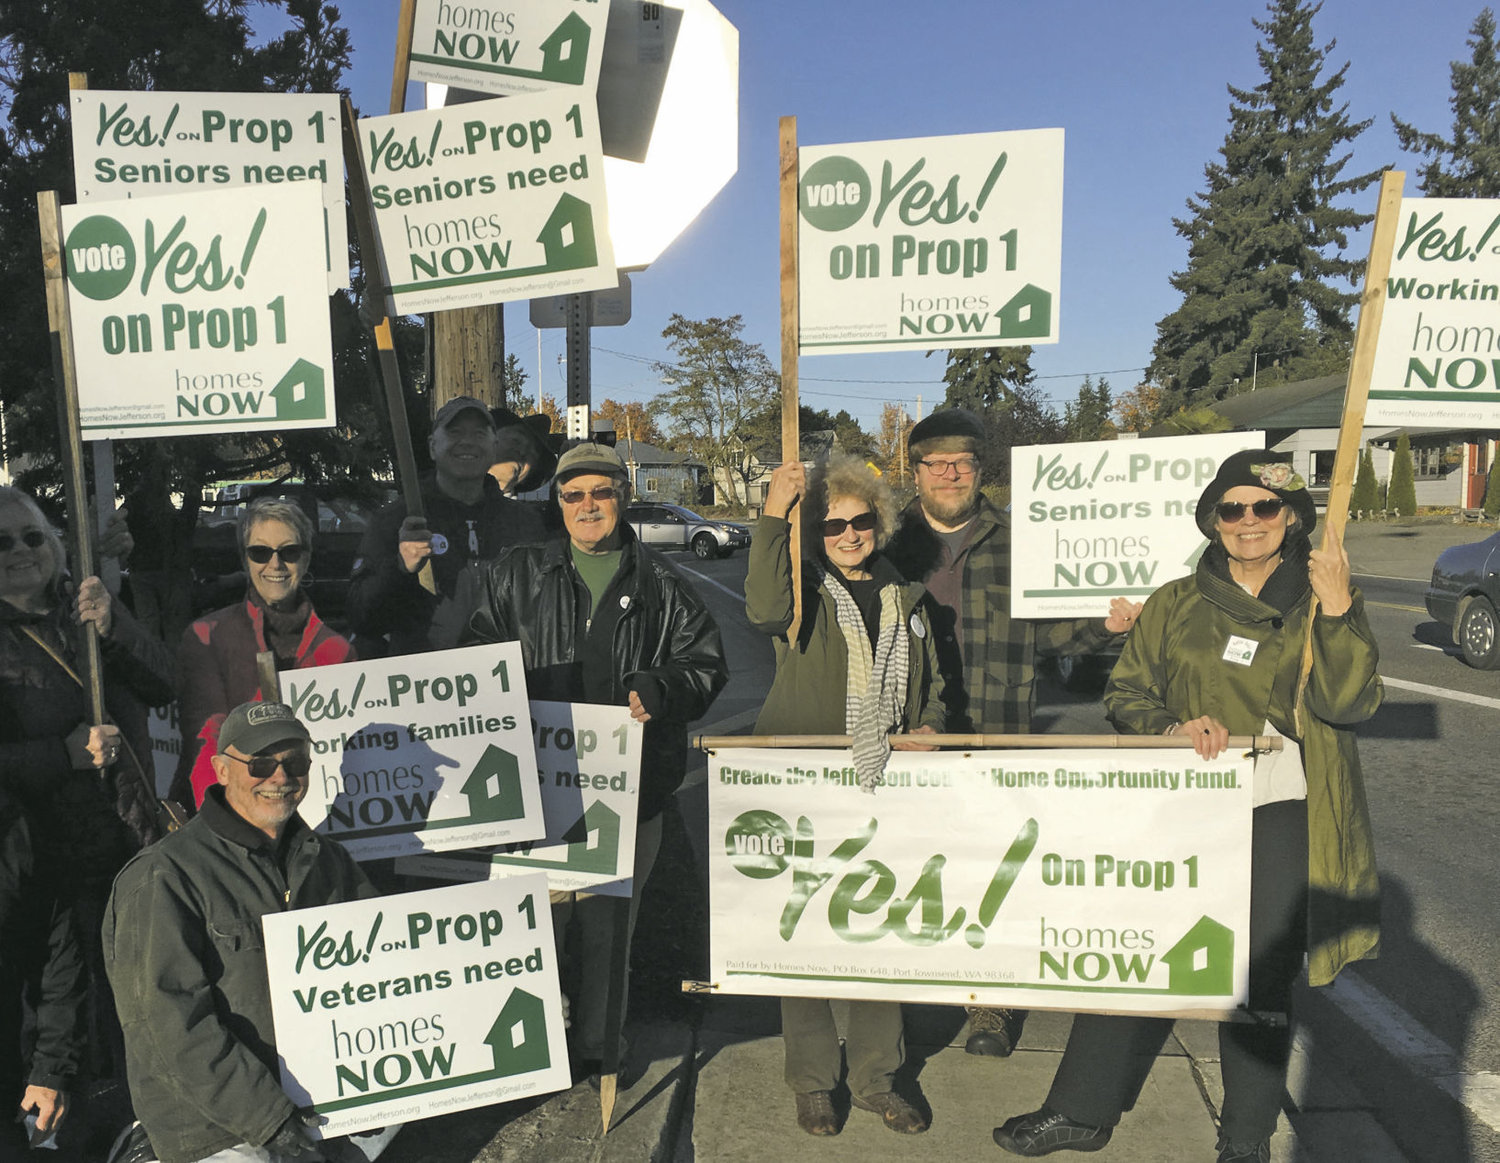 Supporters of Proposition 1 pose for a photo in Port Townsend. Smaller groups of supporters have assembled in Port Hadlock, according to Homes Now spokesperson Bruce Cowan. Courtesy photo Bruce Cowan